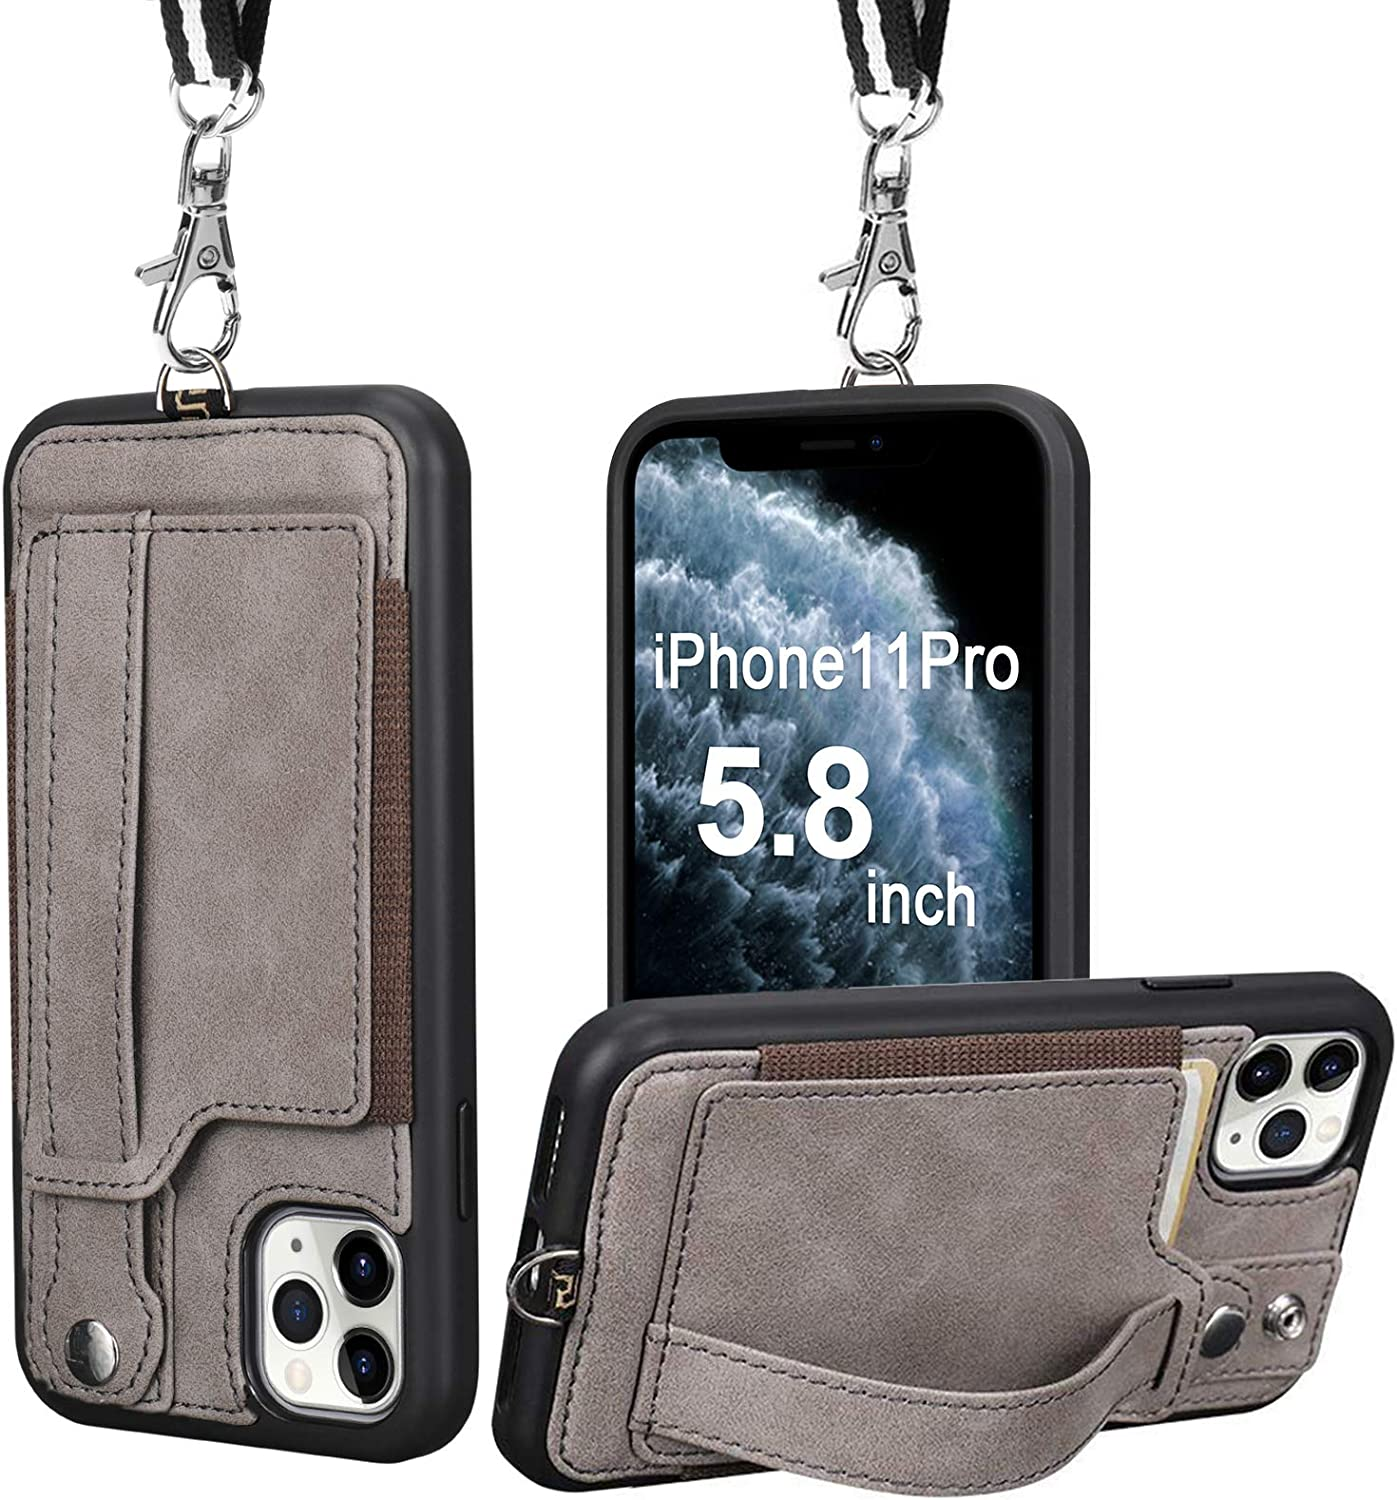 TOOVREN iPhone 11 Pro Case, iPhone 11 Pro Wallet Lanyard Neck Strap with Kickstand Leather Card Holder Adjustable Detachable Necklace, Phone Protective Back Cover for iPhone 11 Pro 5.8